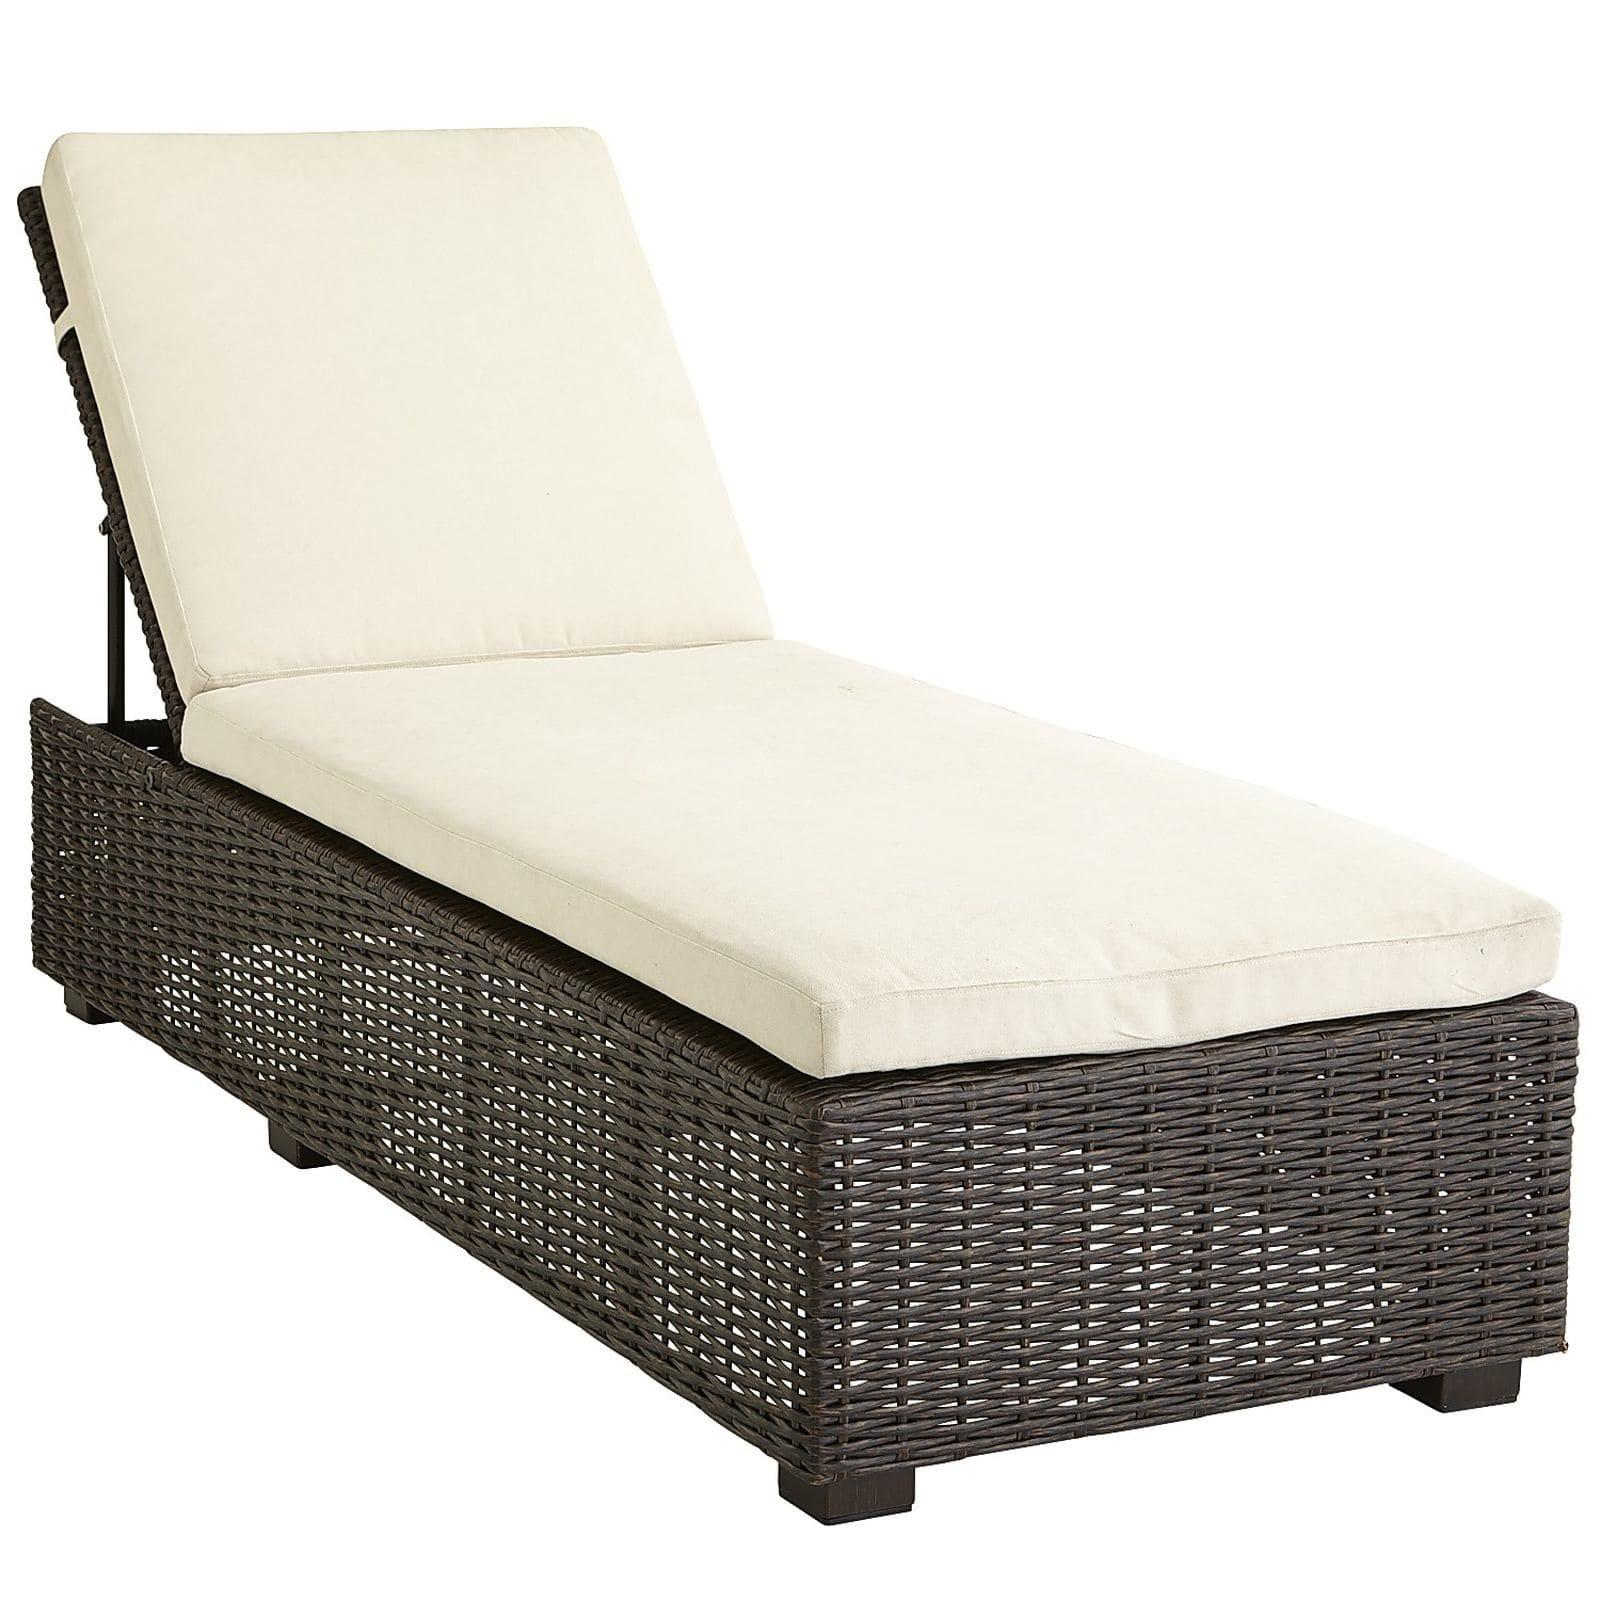 Echo Beach Tobacco Brown Chaise Lounge Pier Imports